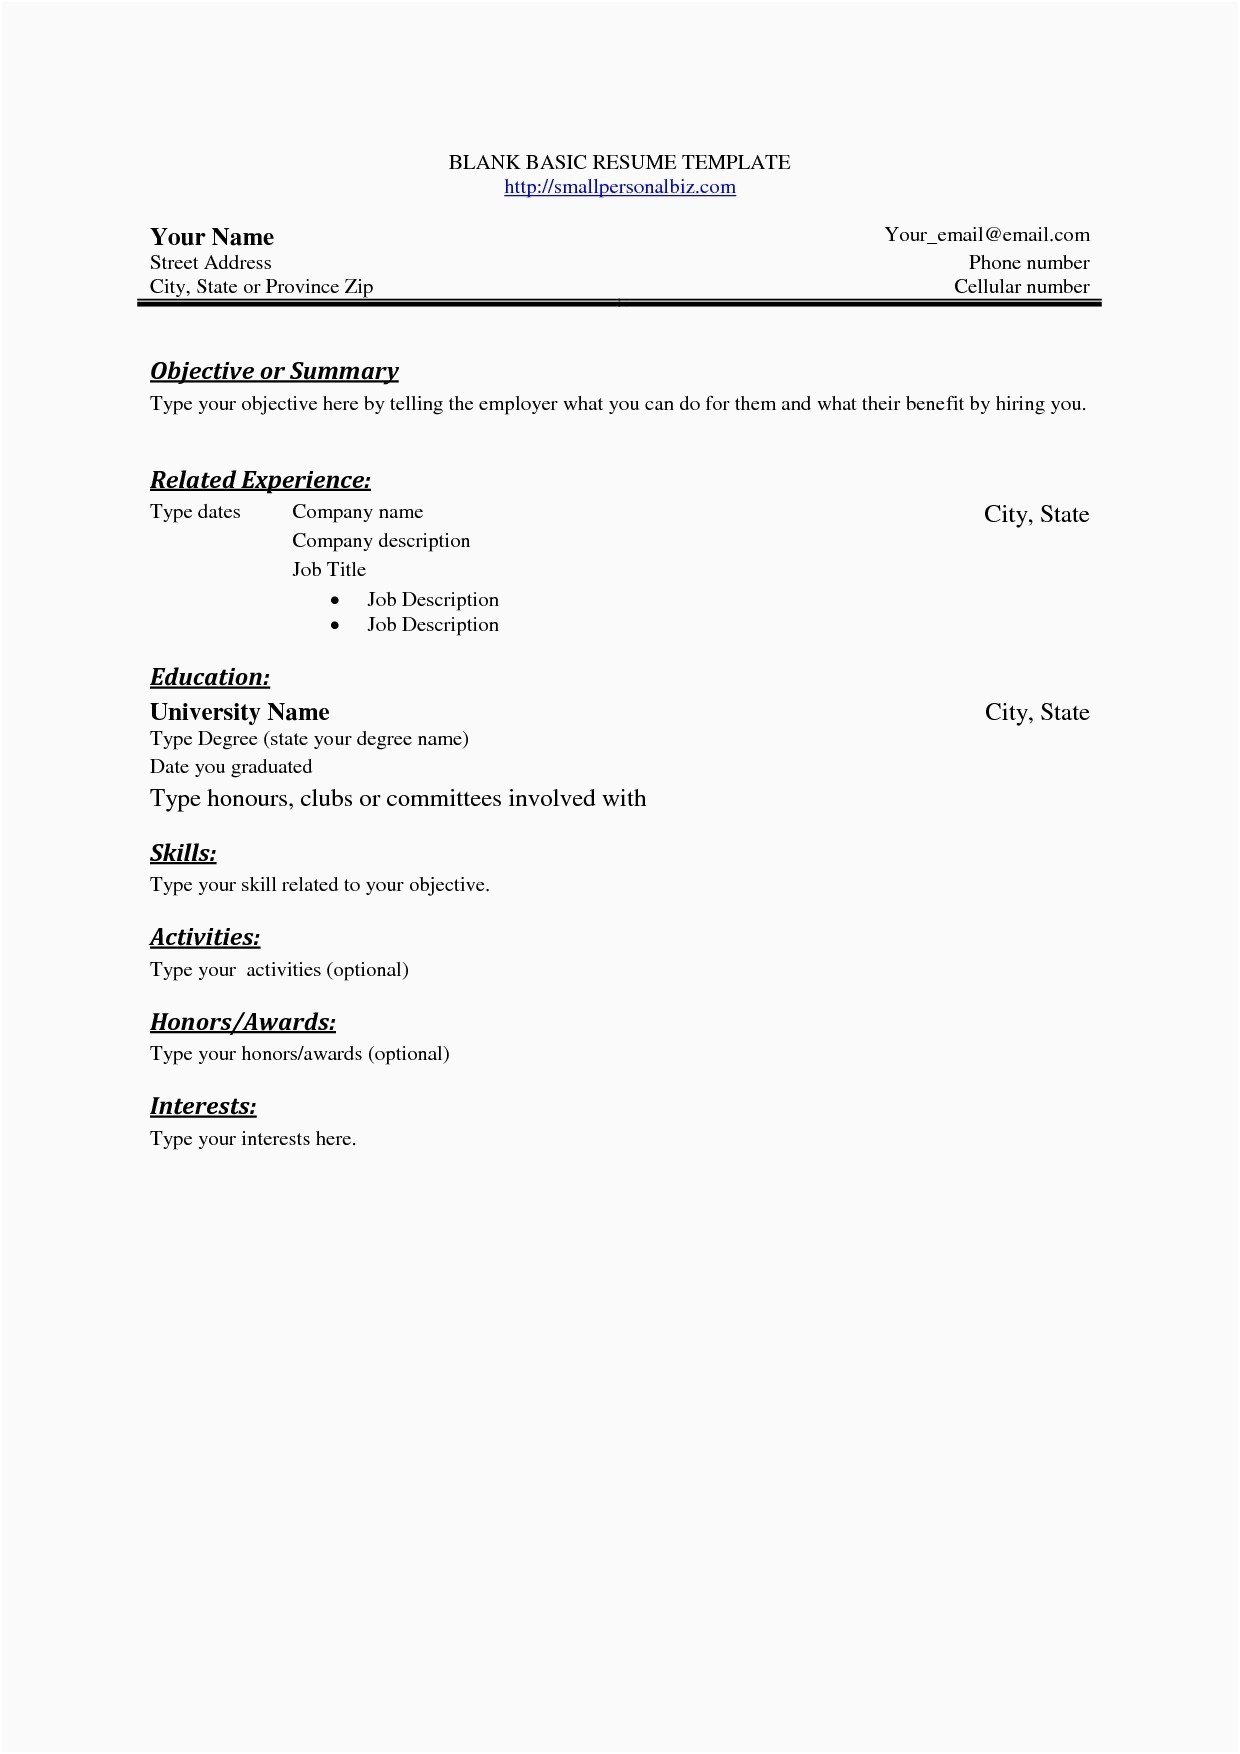 Headshot Resume Template - Free Cease and Desist Letter Template 2018 Cfo Resume Template